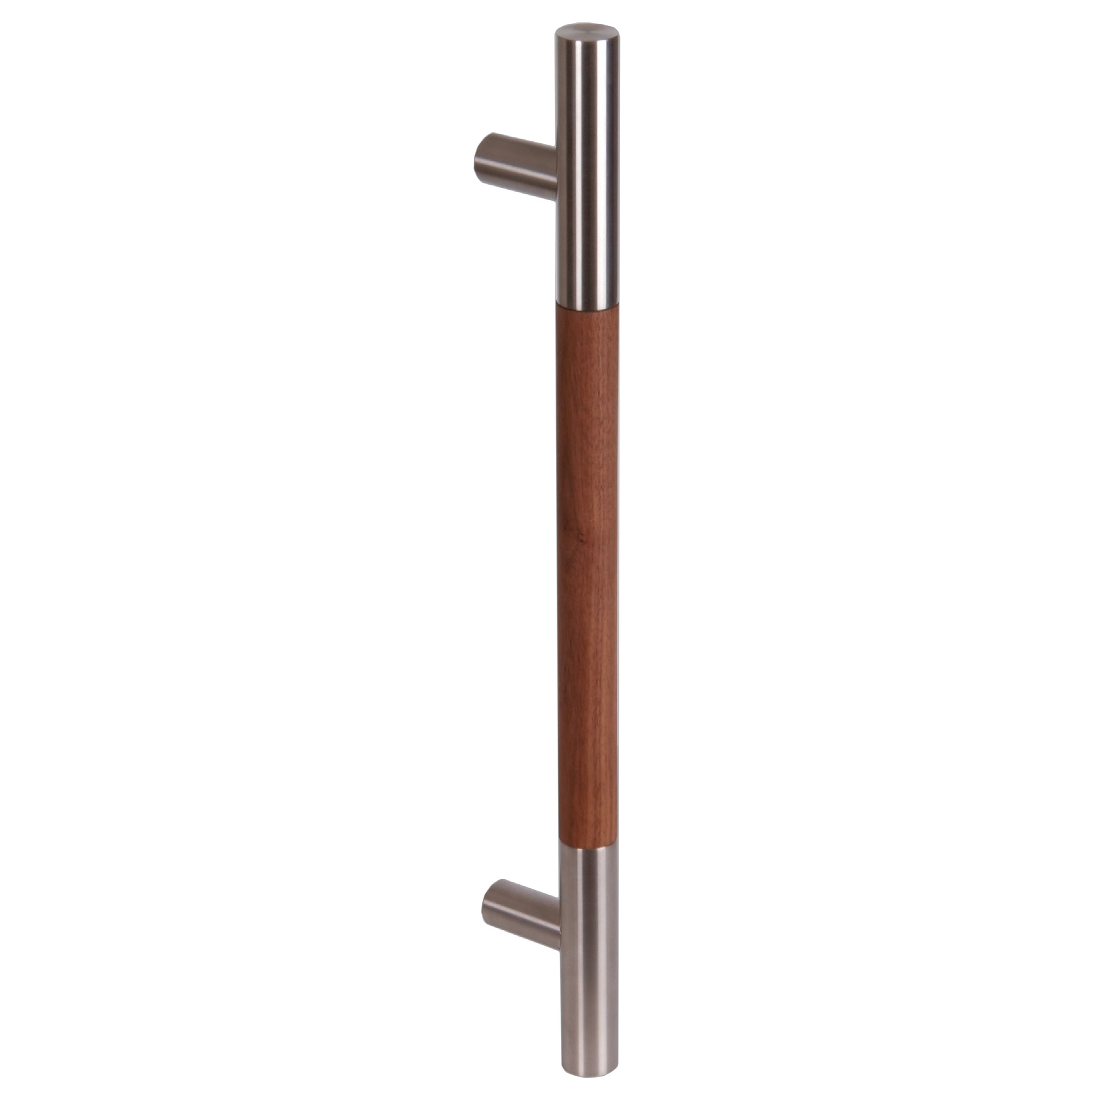 IMPERO WOOD/POLISHED STAINLESS STEEL, TEAK, DRILLING DISTANCE 400MM, SINGLE HANDLE